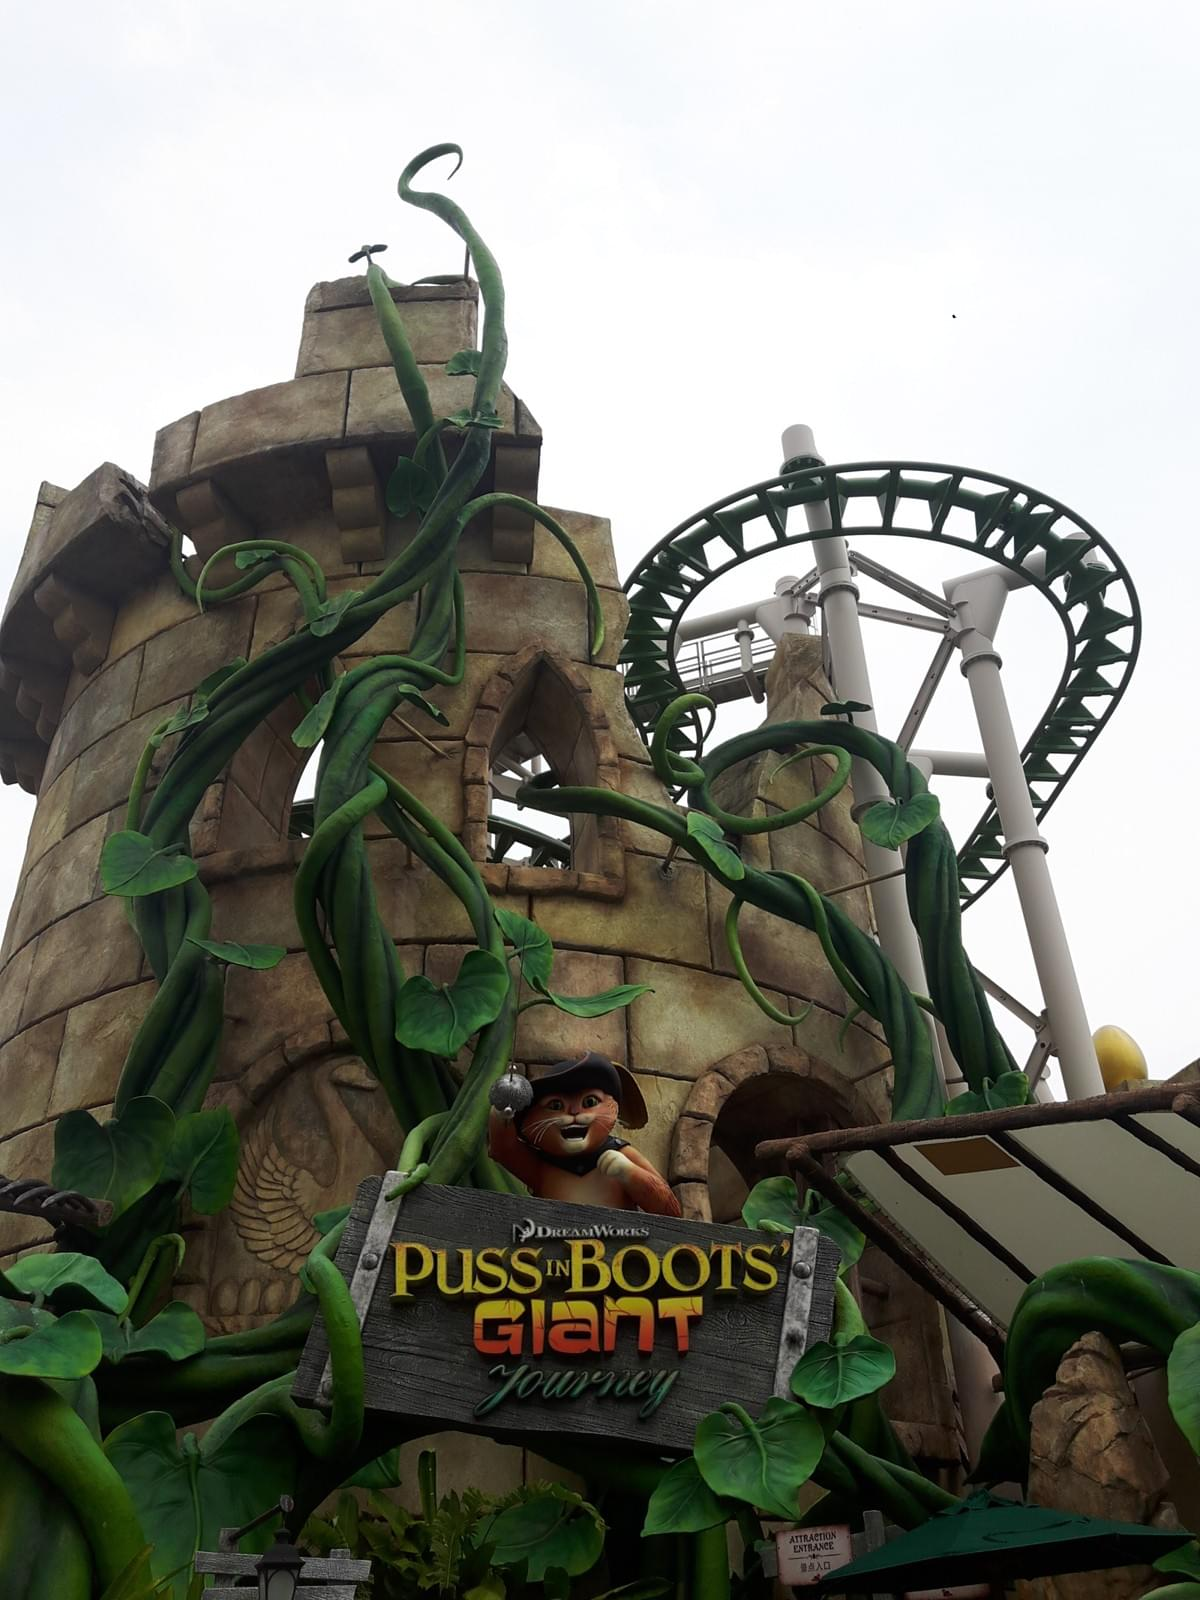 Puss in Boots Ride at Universal Studios Singapore